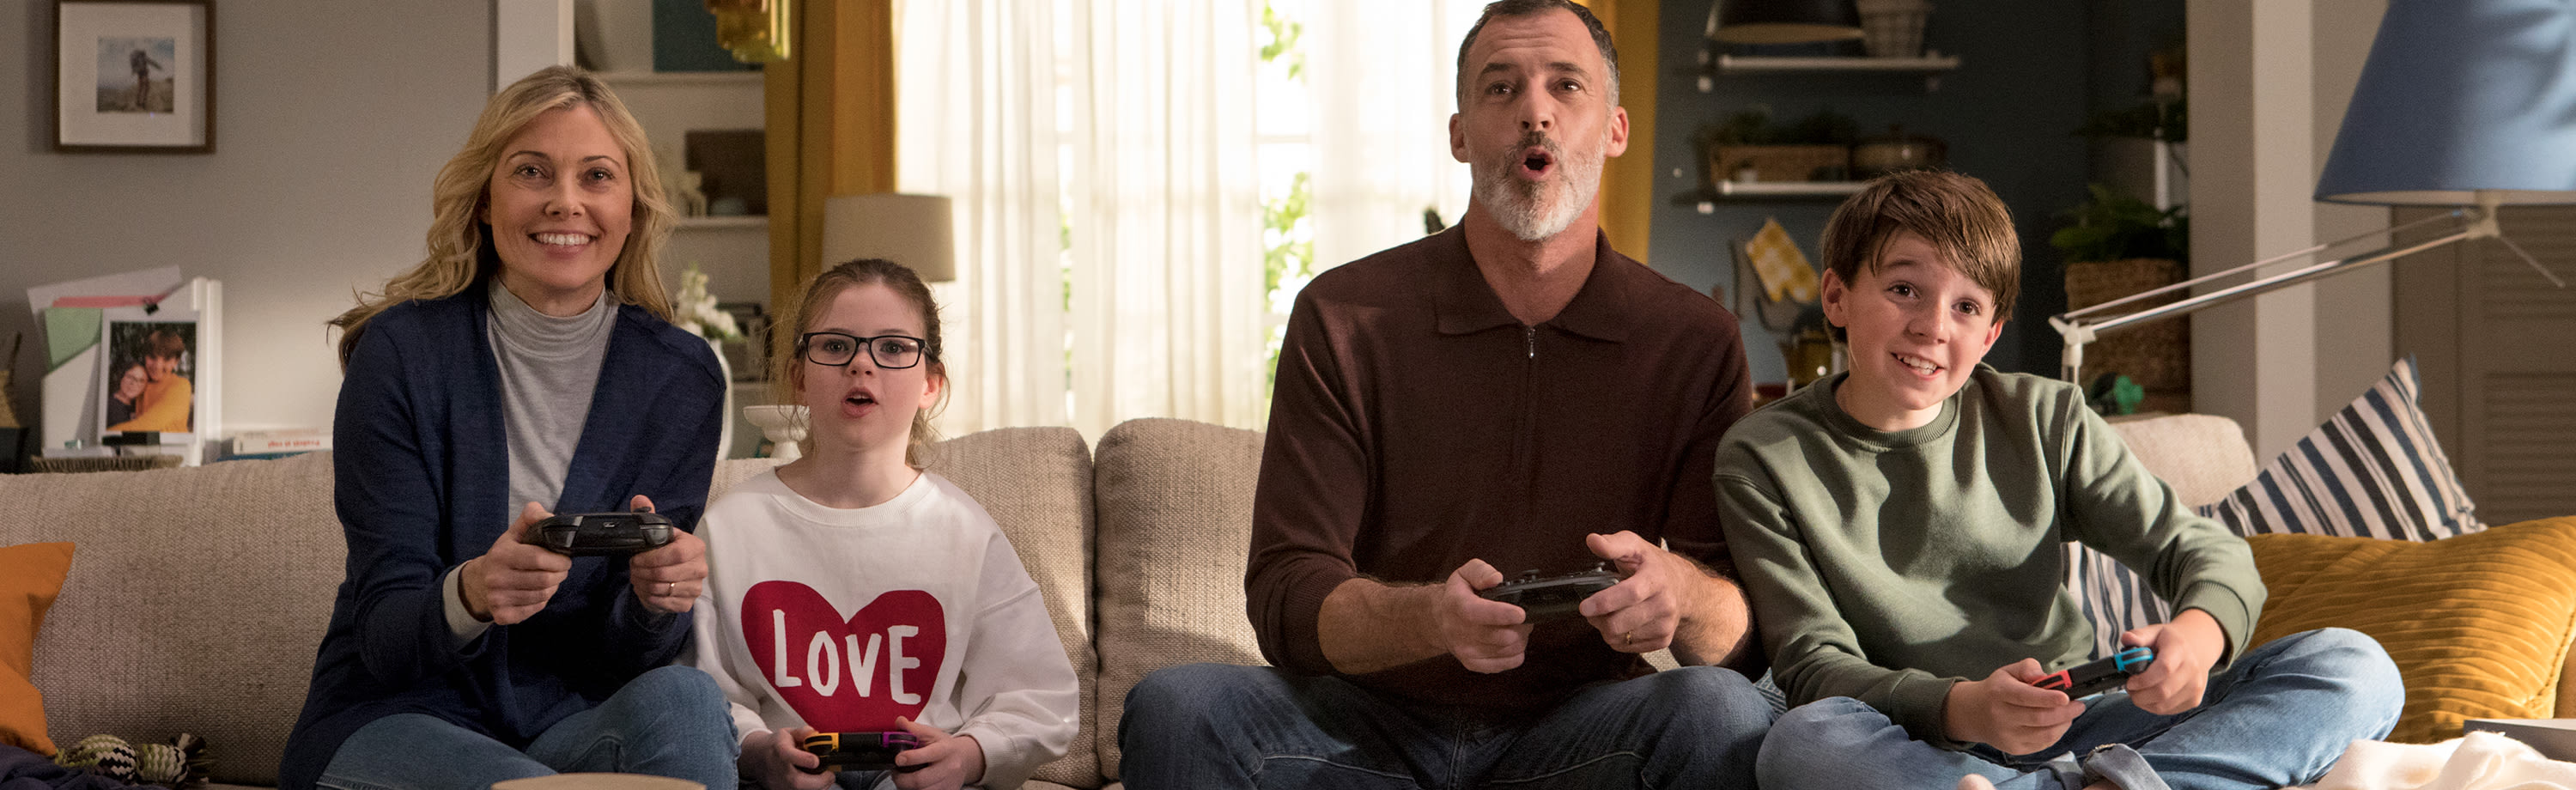 Family Games on the Nintendo Switch Everyone Can Play